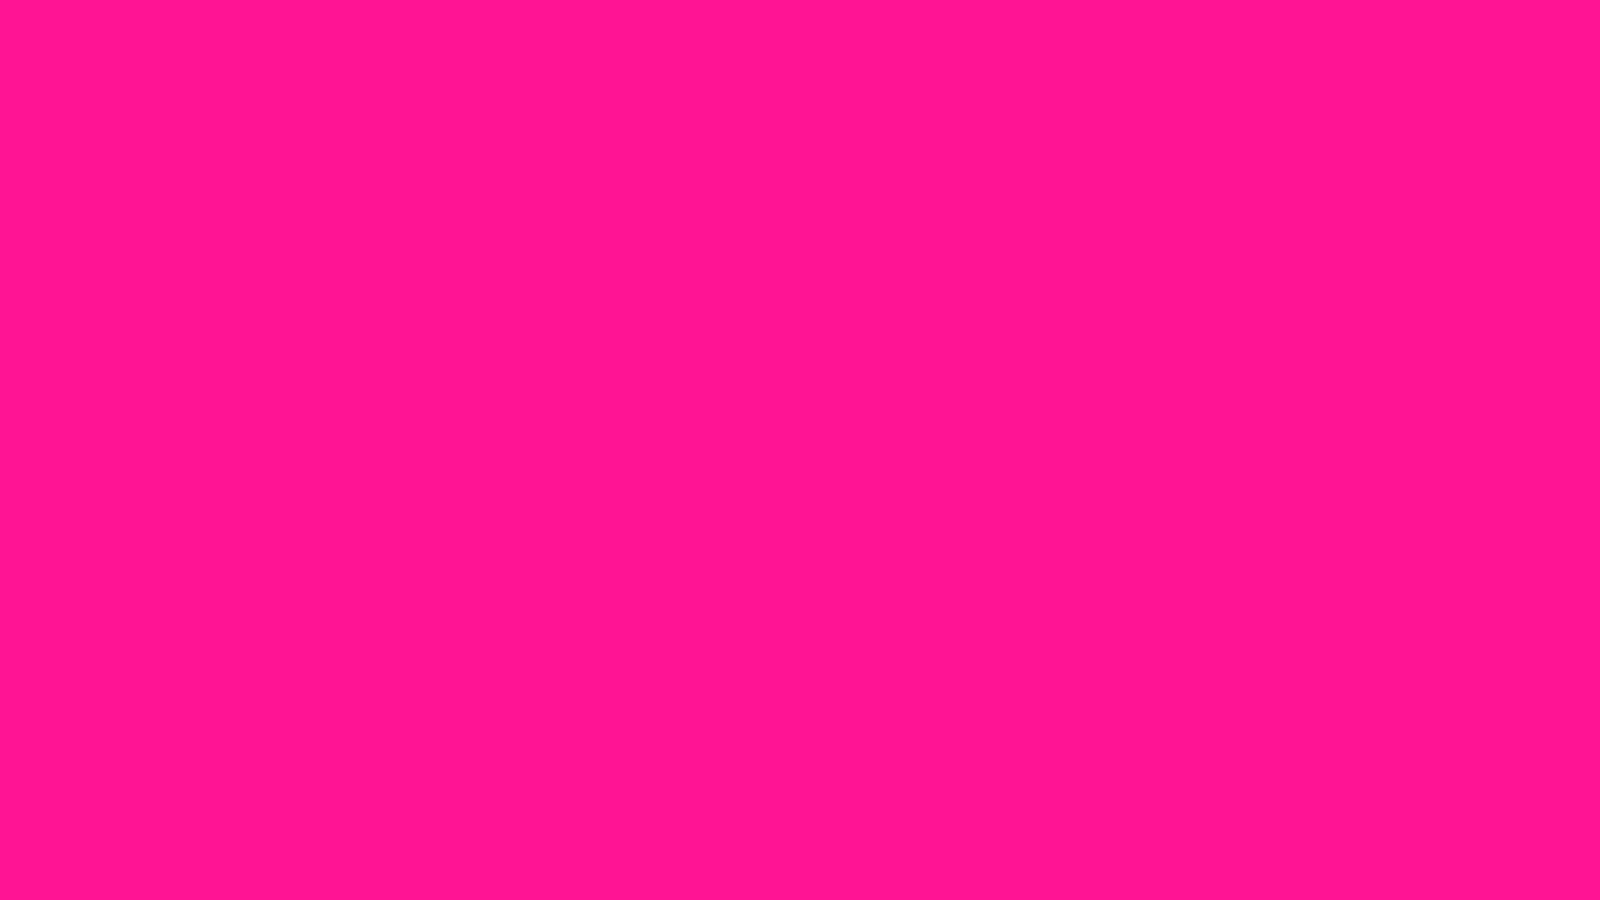 1600x900 Deep Pink Solid Color Background